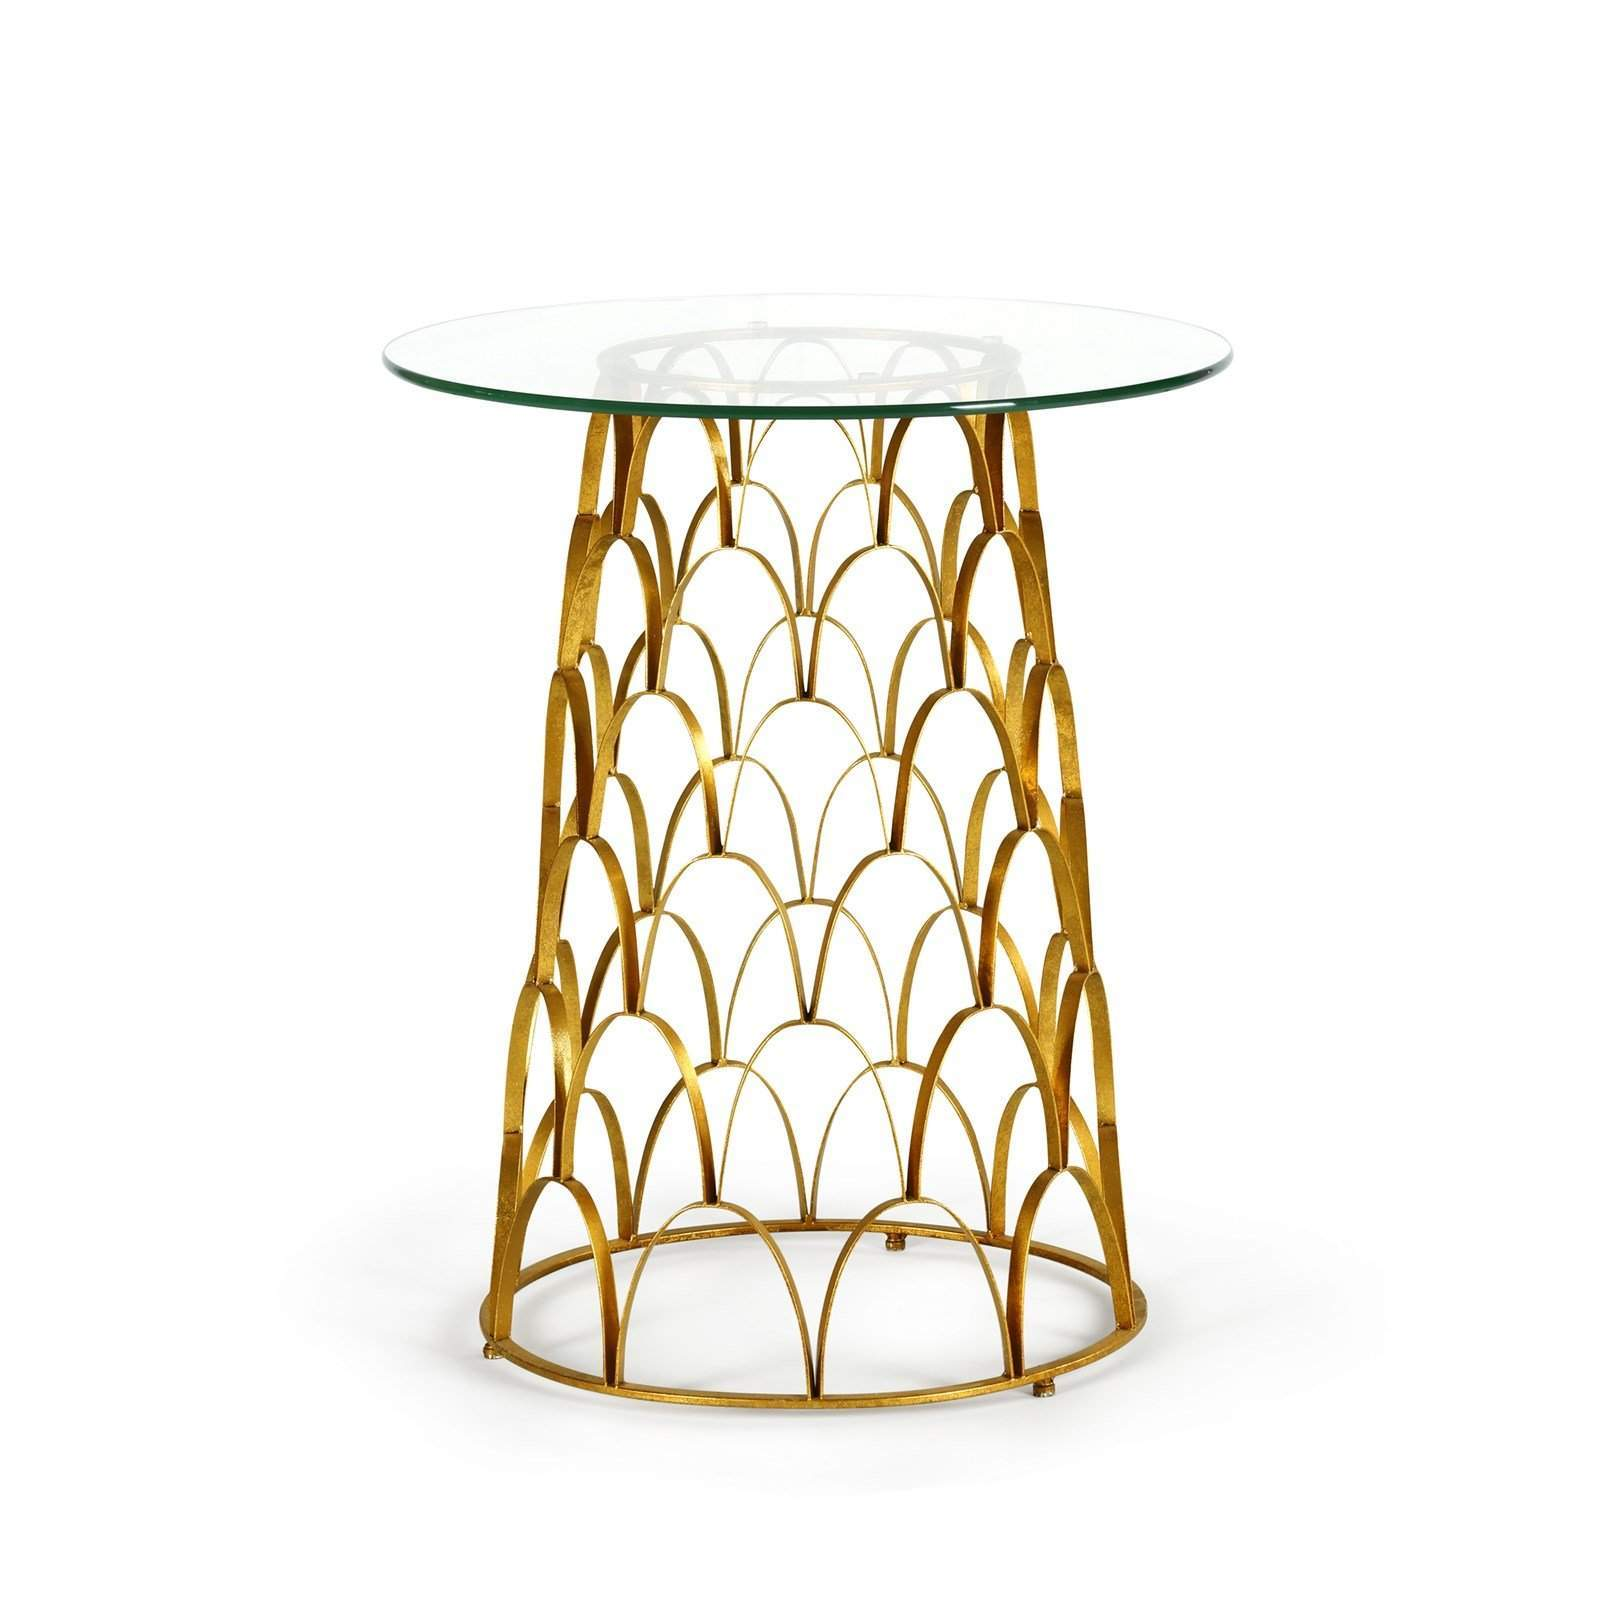 eugene side table brass bungalow accent furniture contemporary chairs waterproof covers outdoor patio and glass tables for living room target salt lamp screw legs coastal floor